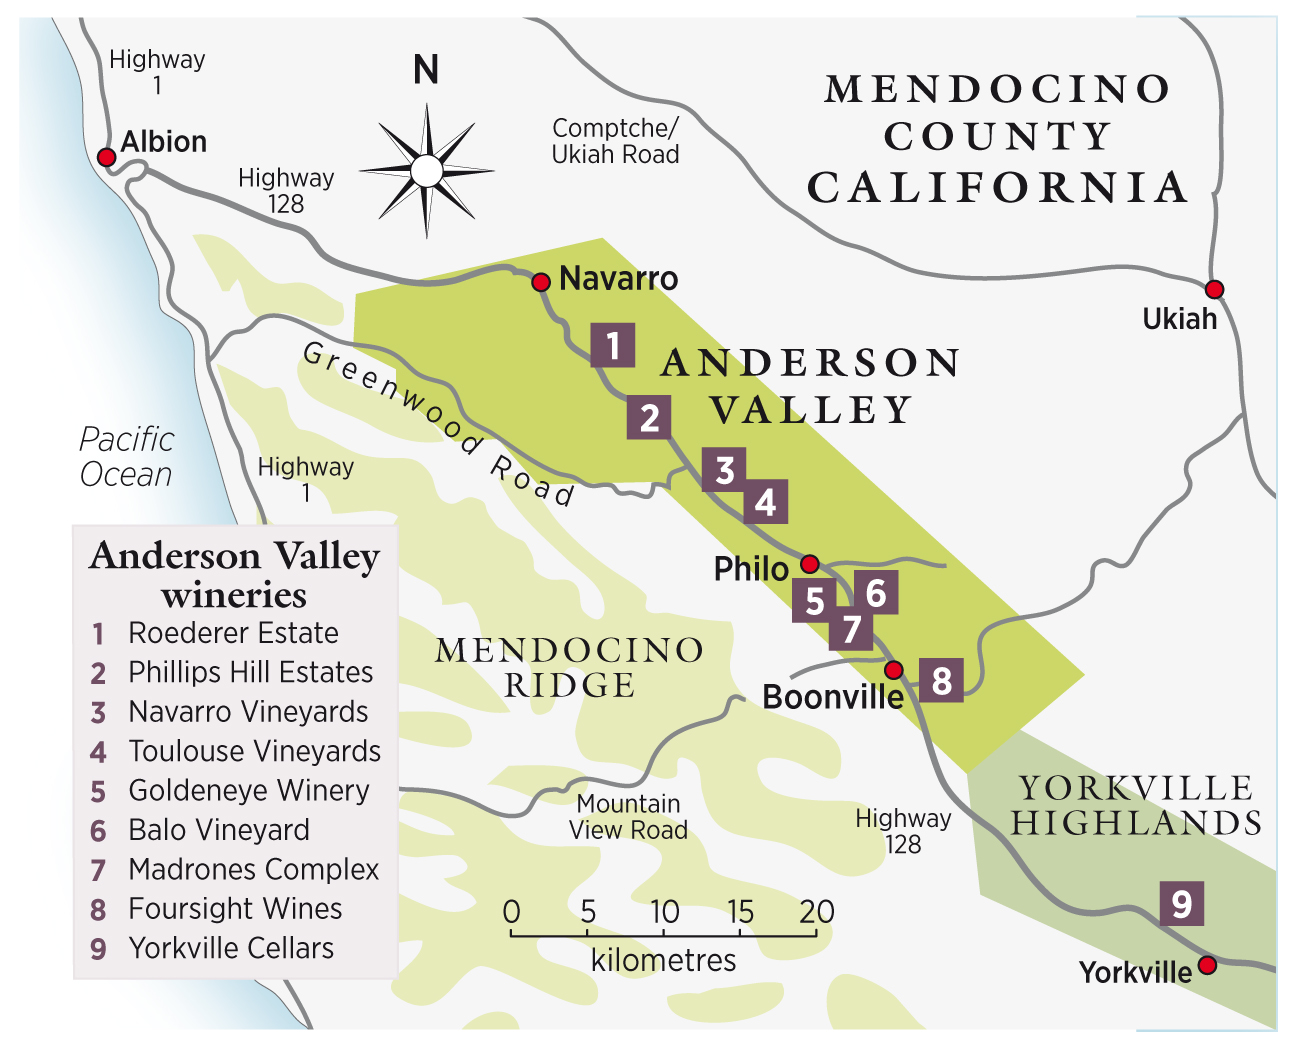 Anderson Valley travel guide - Decanter on california lodi central valley, california regions, california recreation map, california bank map, active volcanoes in california map, santa cruz wineries map, california food map, paso robles street map, california map napa wineries, escondido wineries map, foothills california wineries map, california theater map, california hiking map, california vinyard, california wine, california cemetery map, california farm map, southern az wineries map, southern california wineries map,